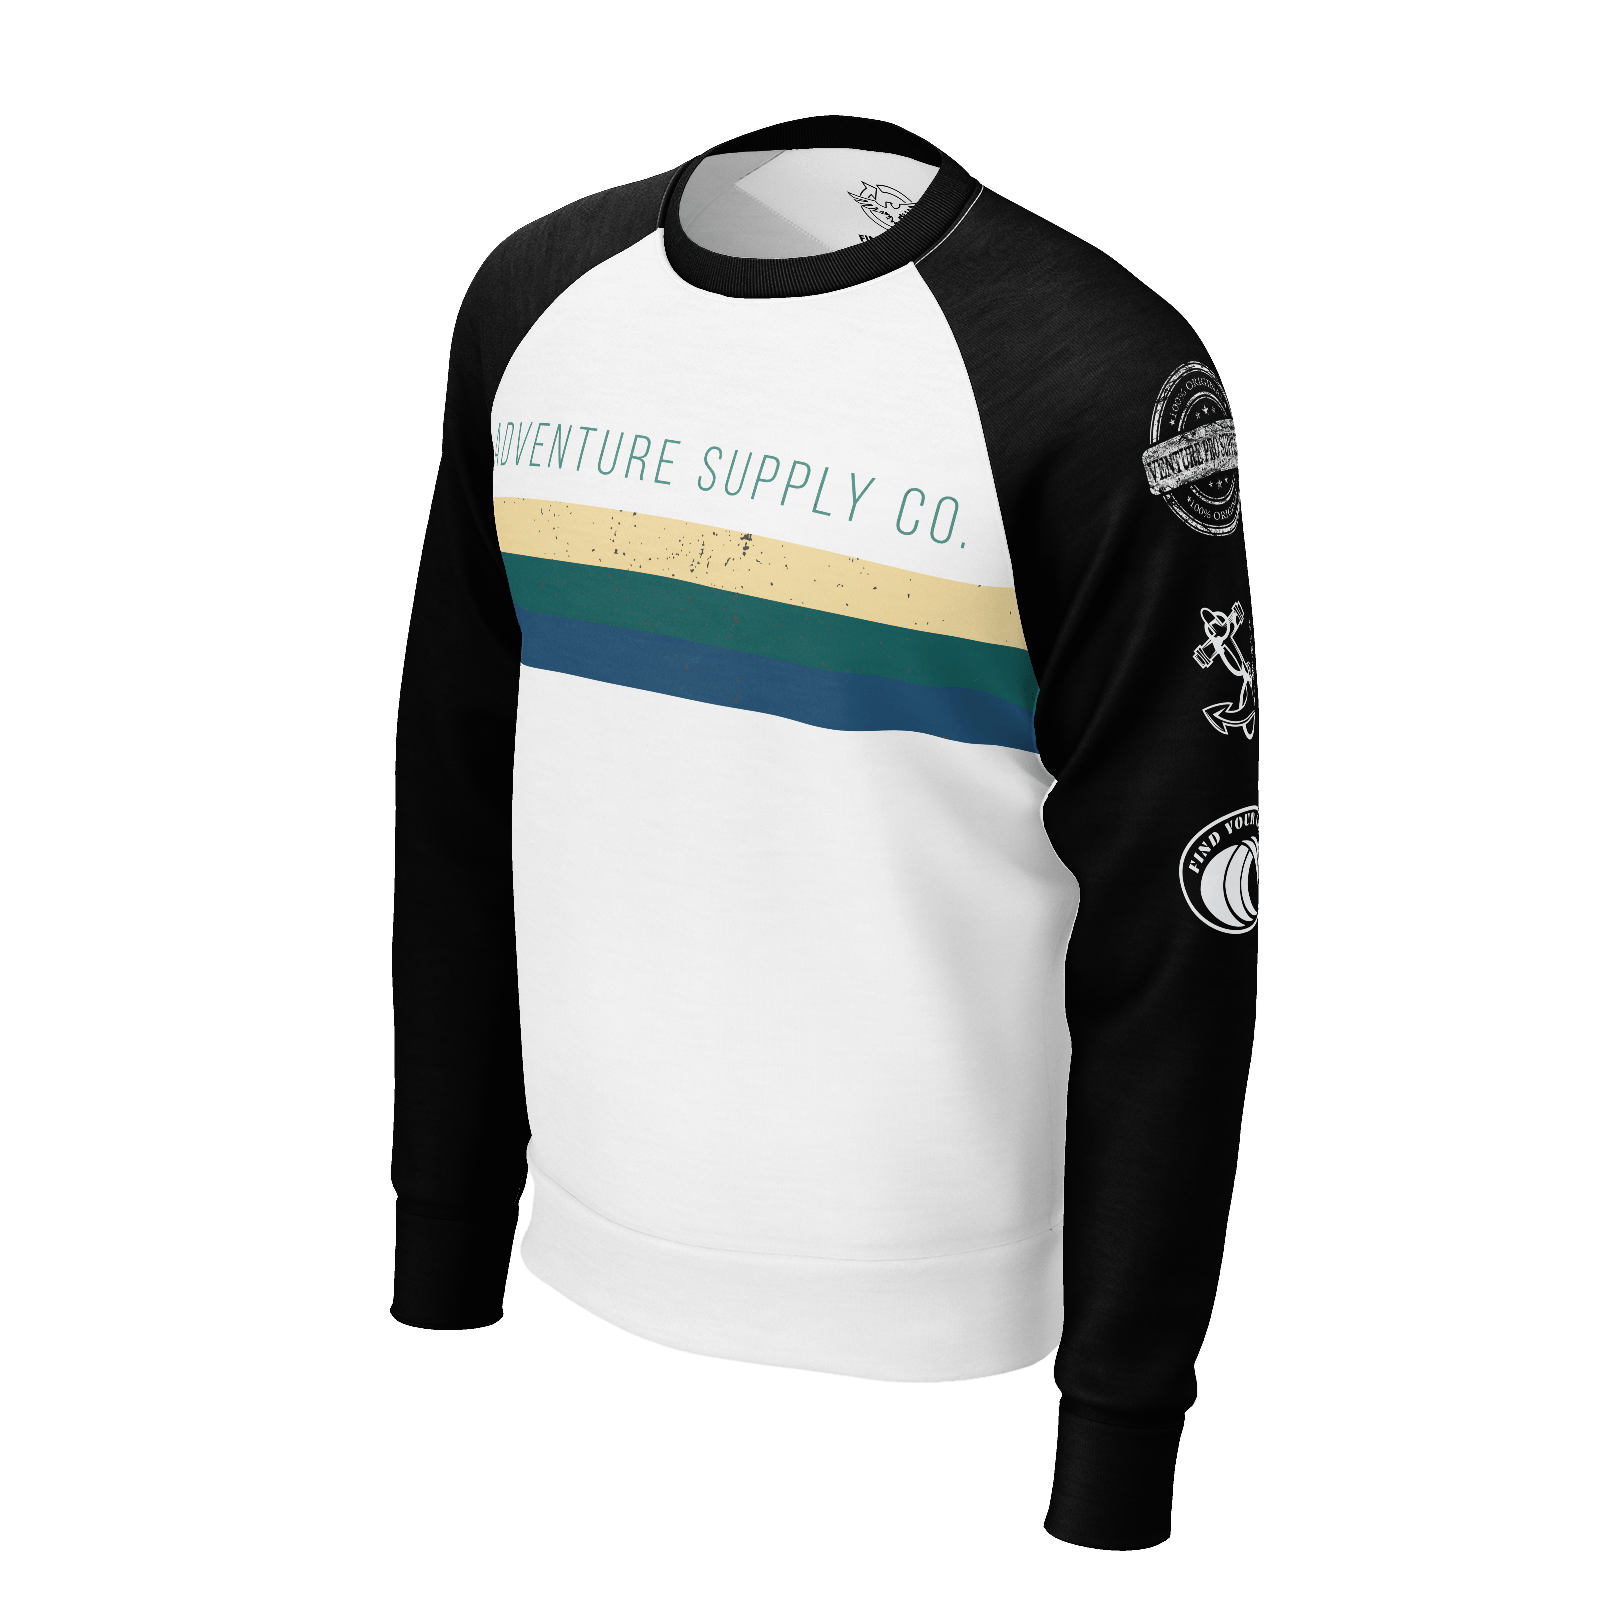 Men's Adventure Sleeve Supply Co. Sustainable Raglan Crew Neck Sweatshirt - Find Your Coast Supply Co.